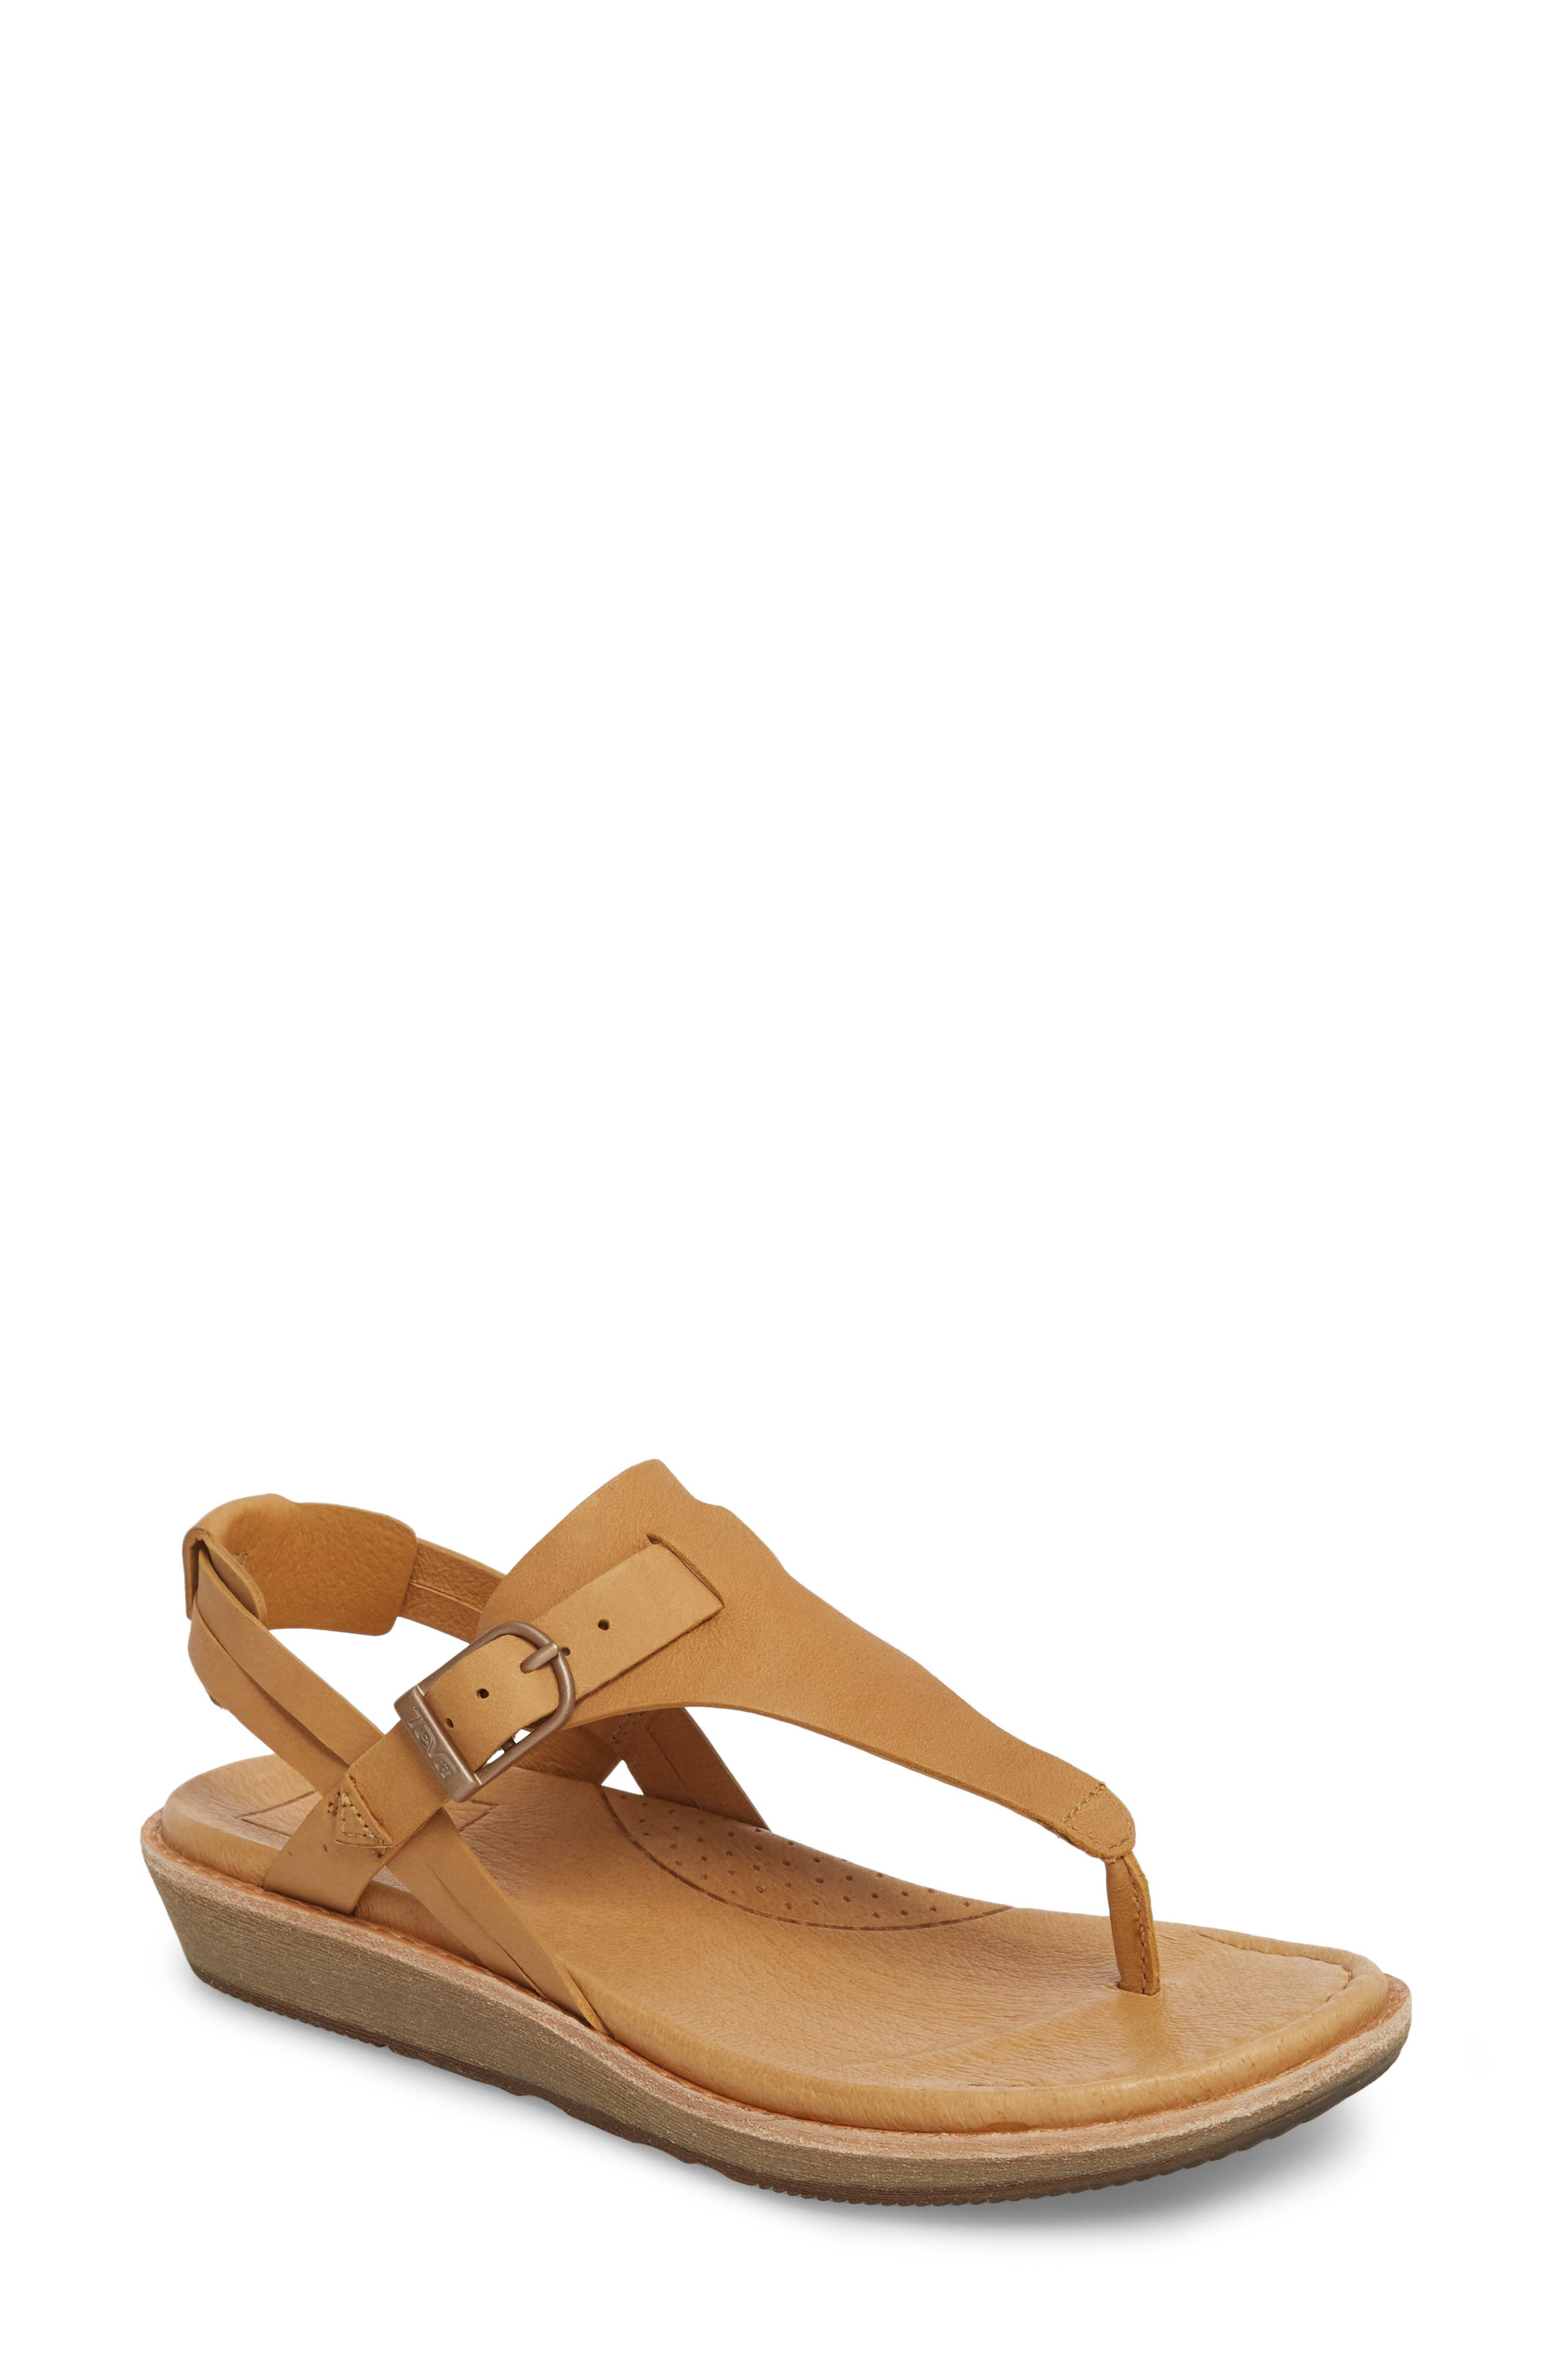 Encanta V-Strap Sandal,                         Main,                         color, TAN